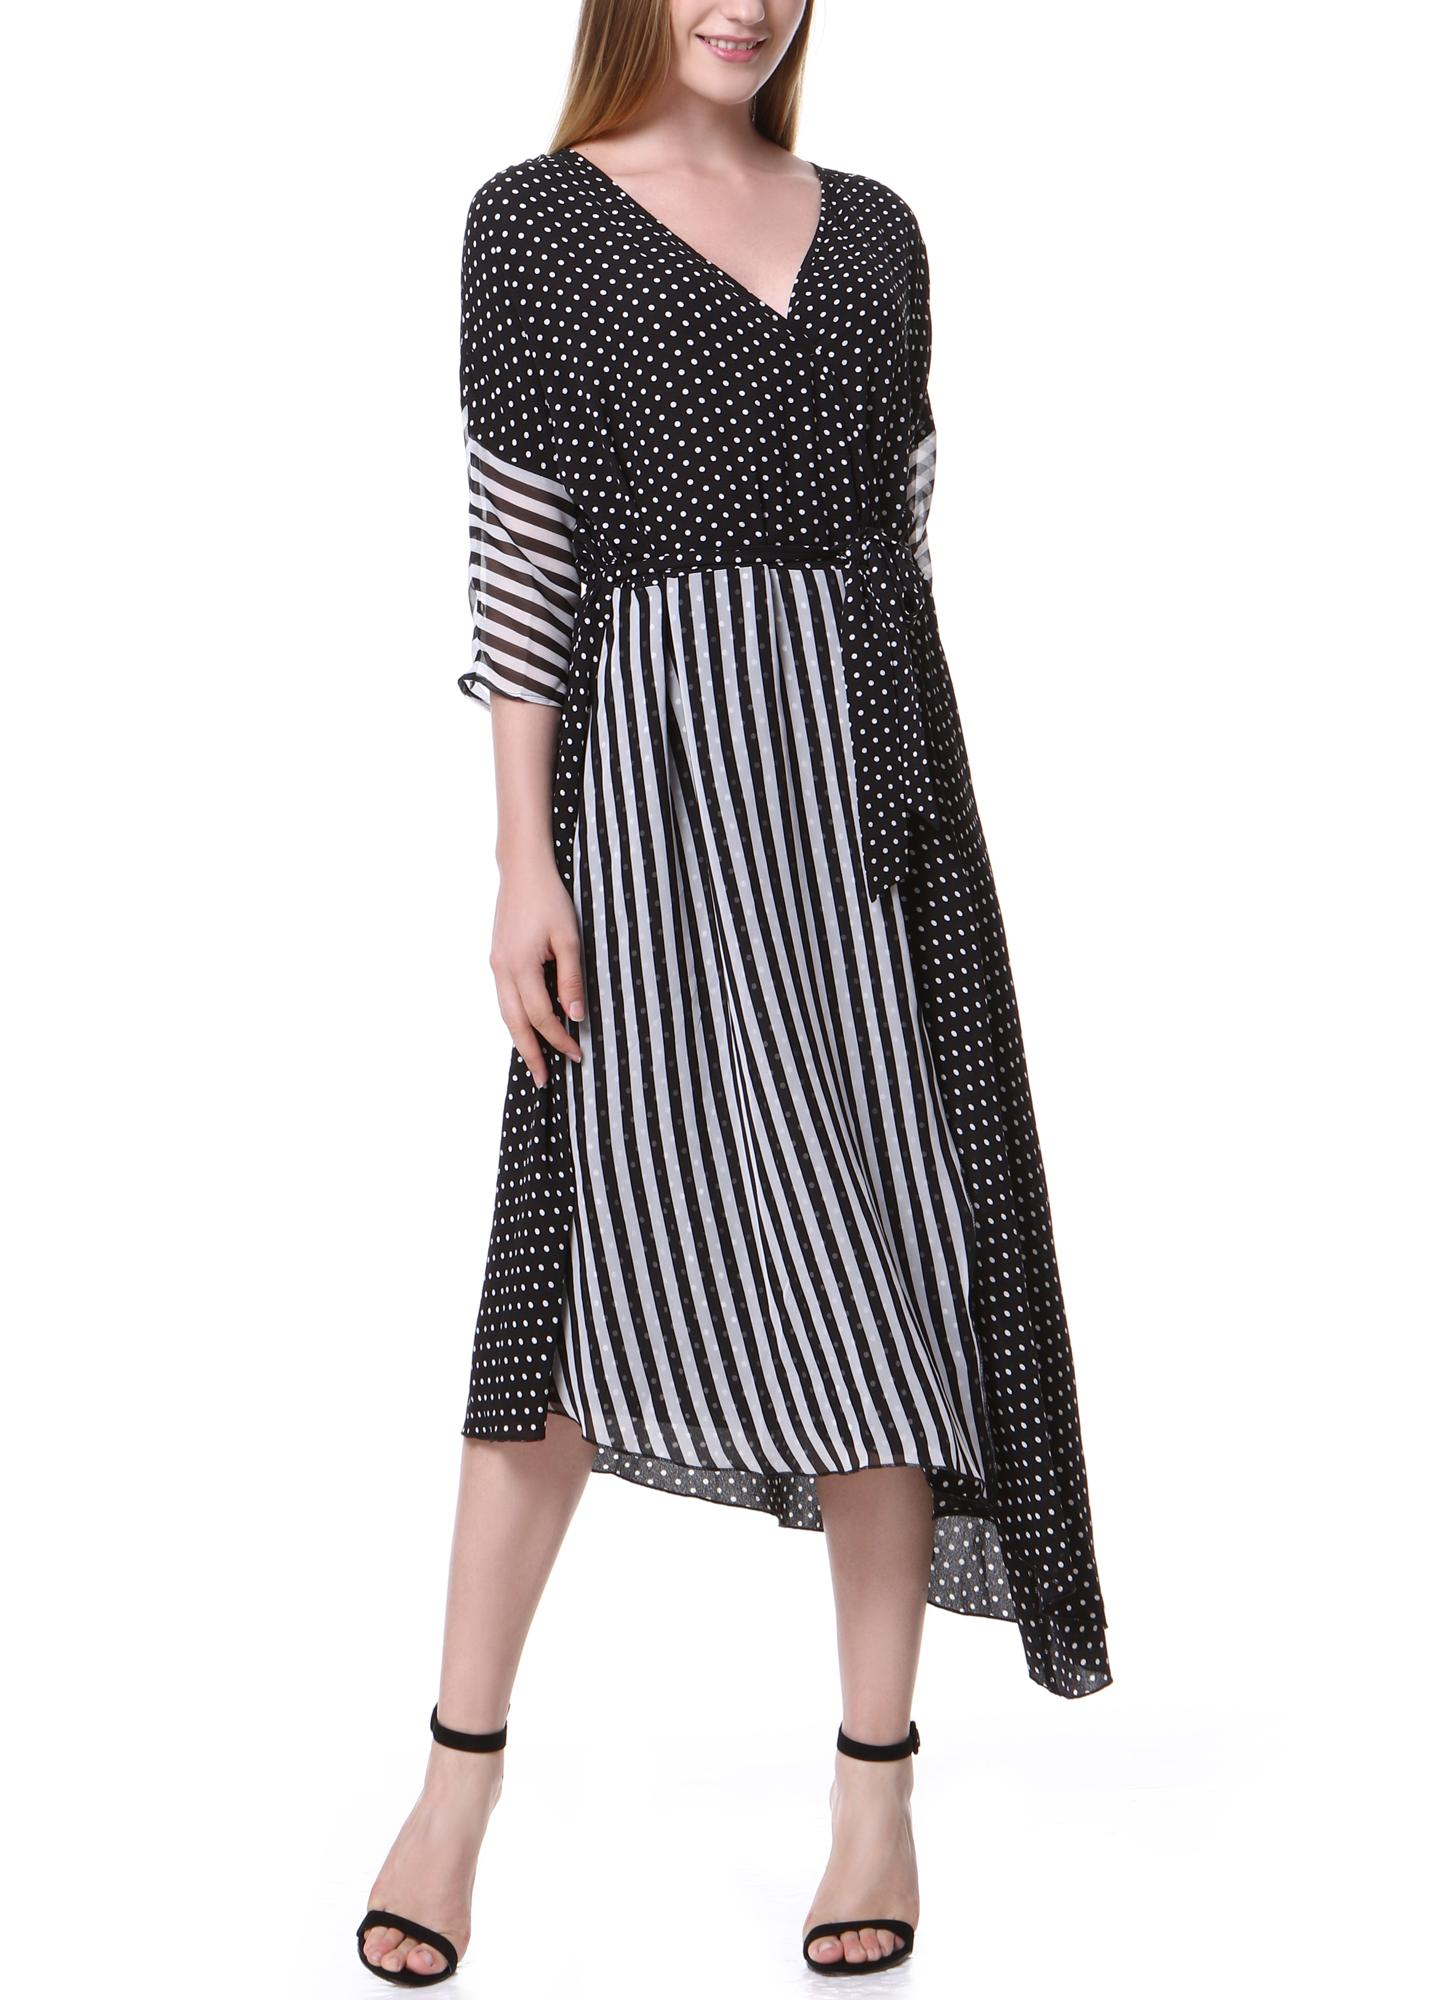 Chiffon Spot Stripe Splicing Asymmetric Dress Tie Waist Elegant Lady Midi Dress